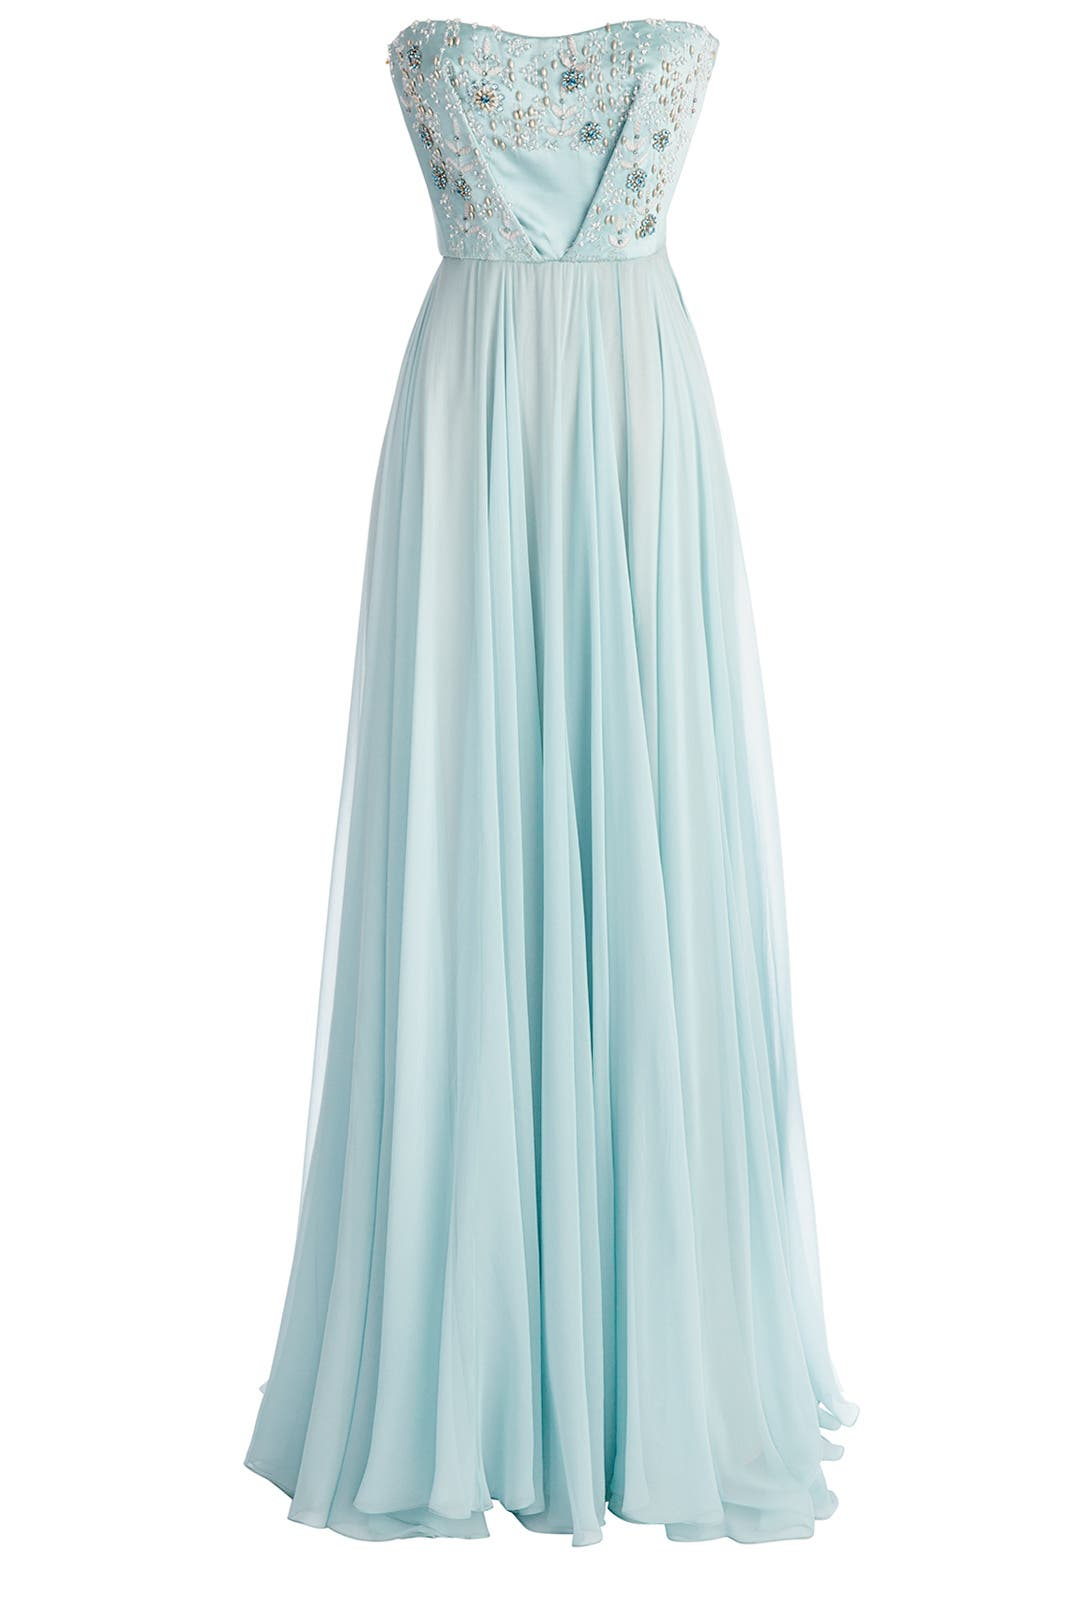 Nigella Blue Gown by Reem Acra